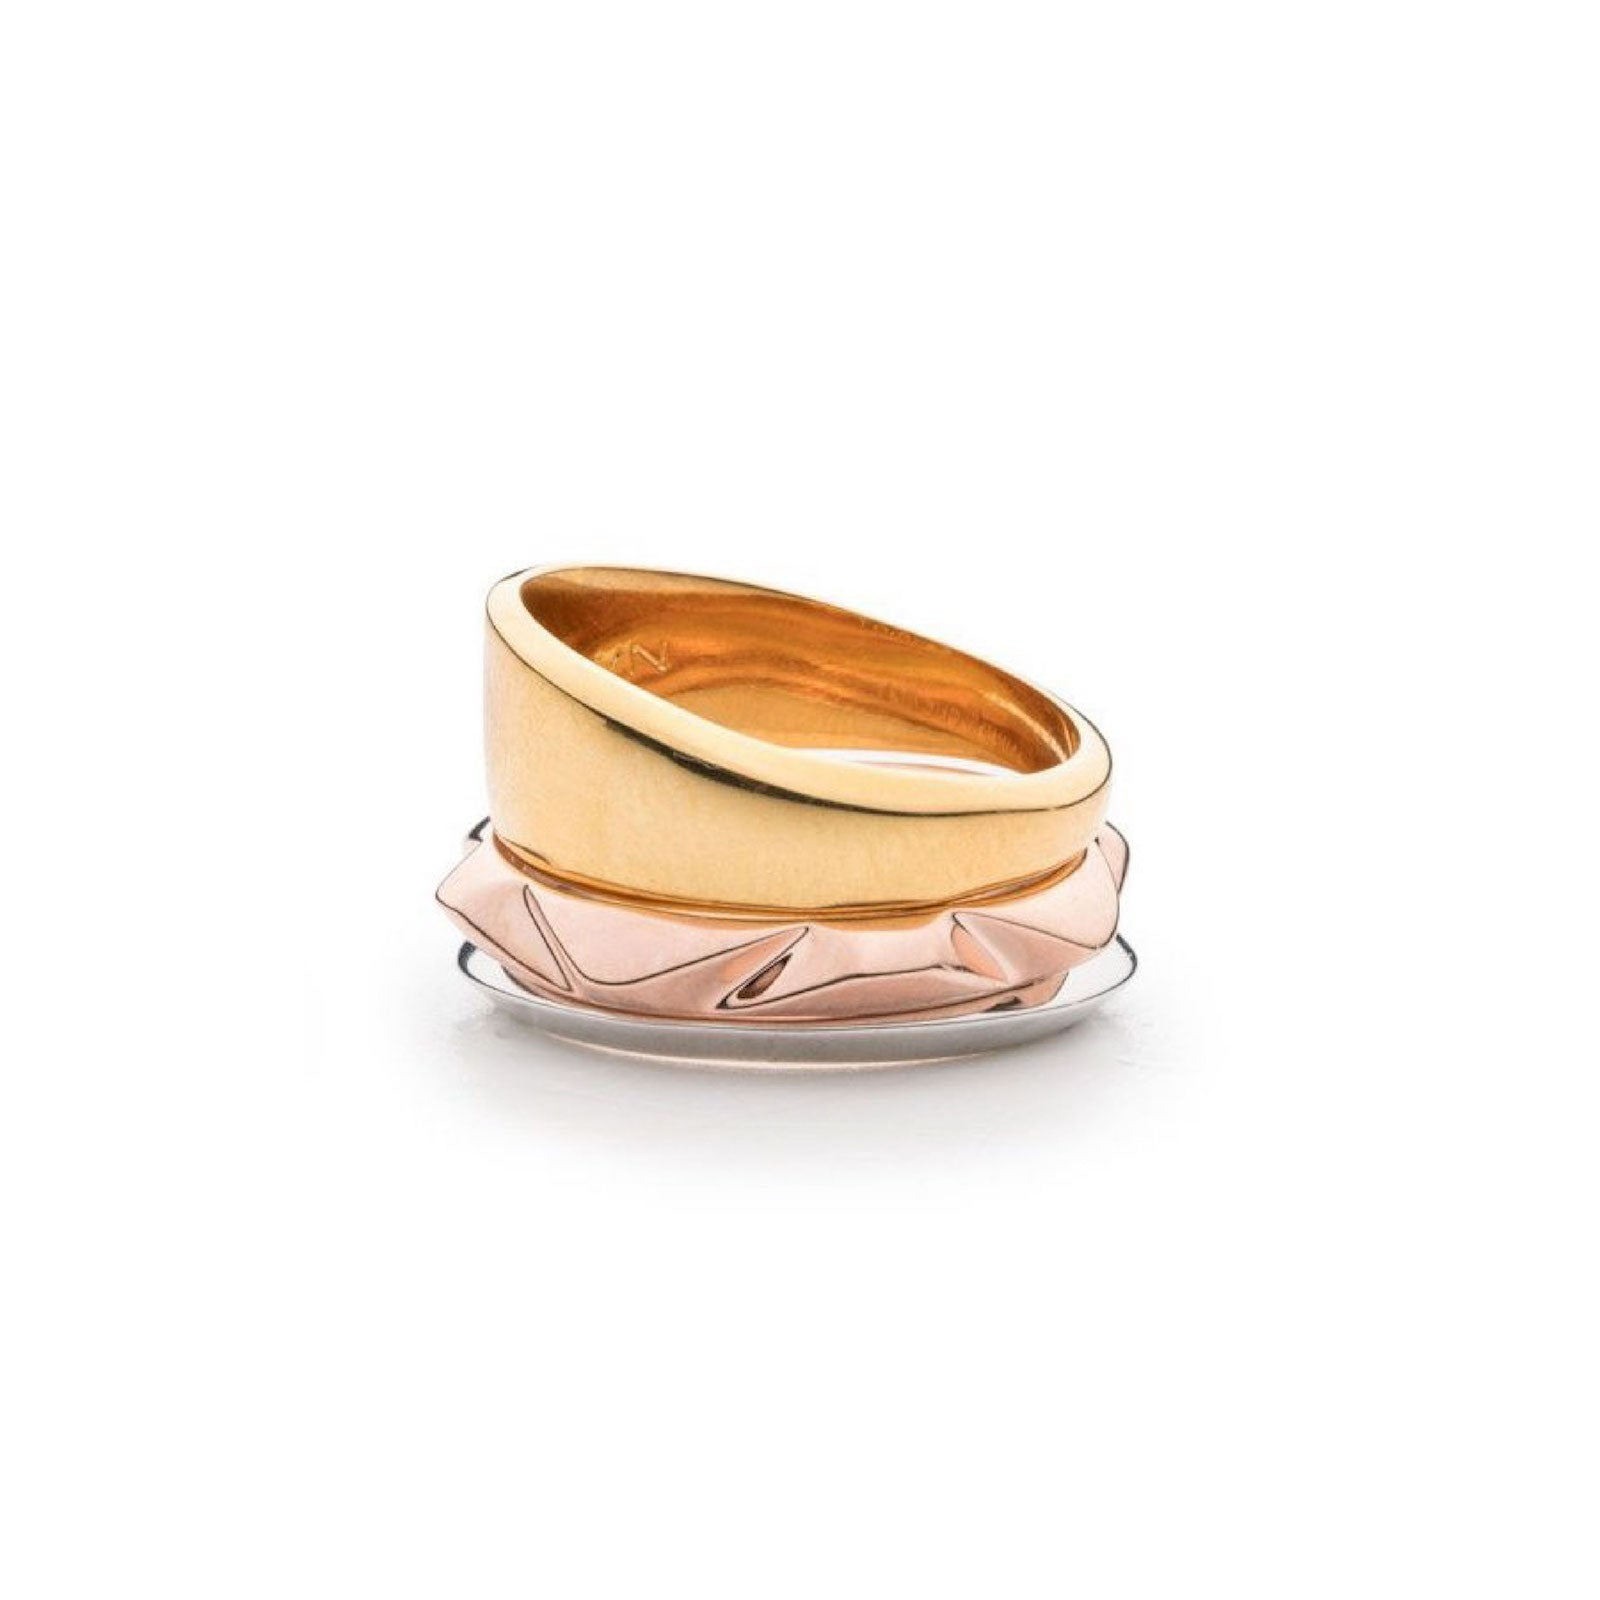 PRIZM RING SET - TRICOLOR PLATED BRASS